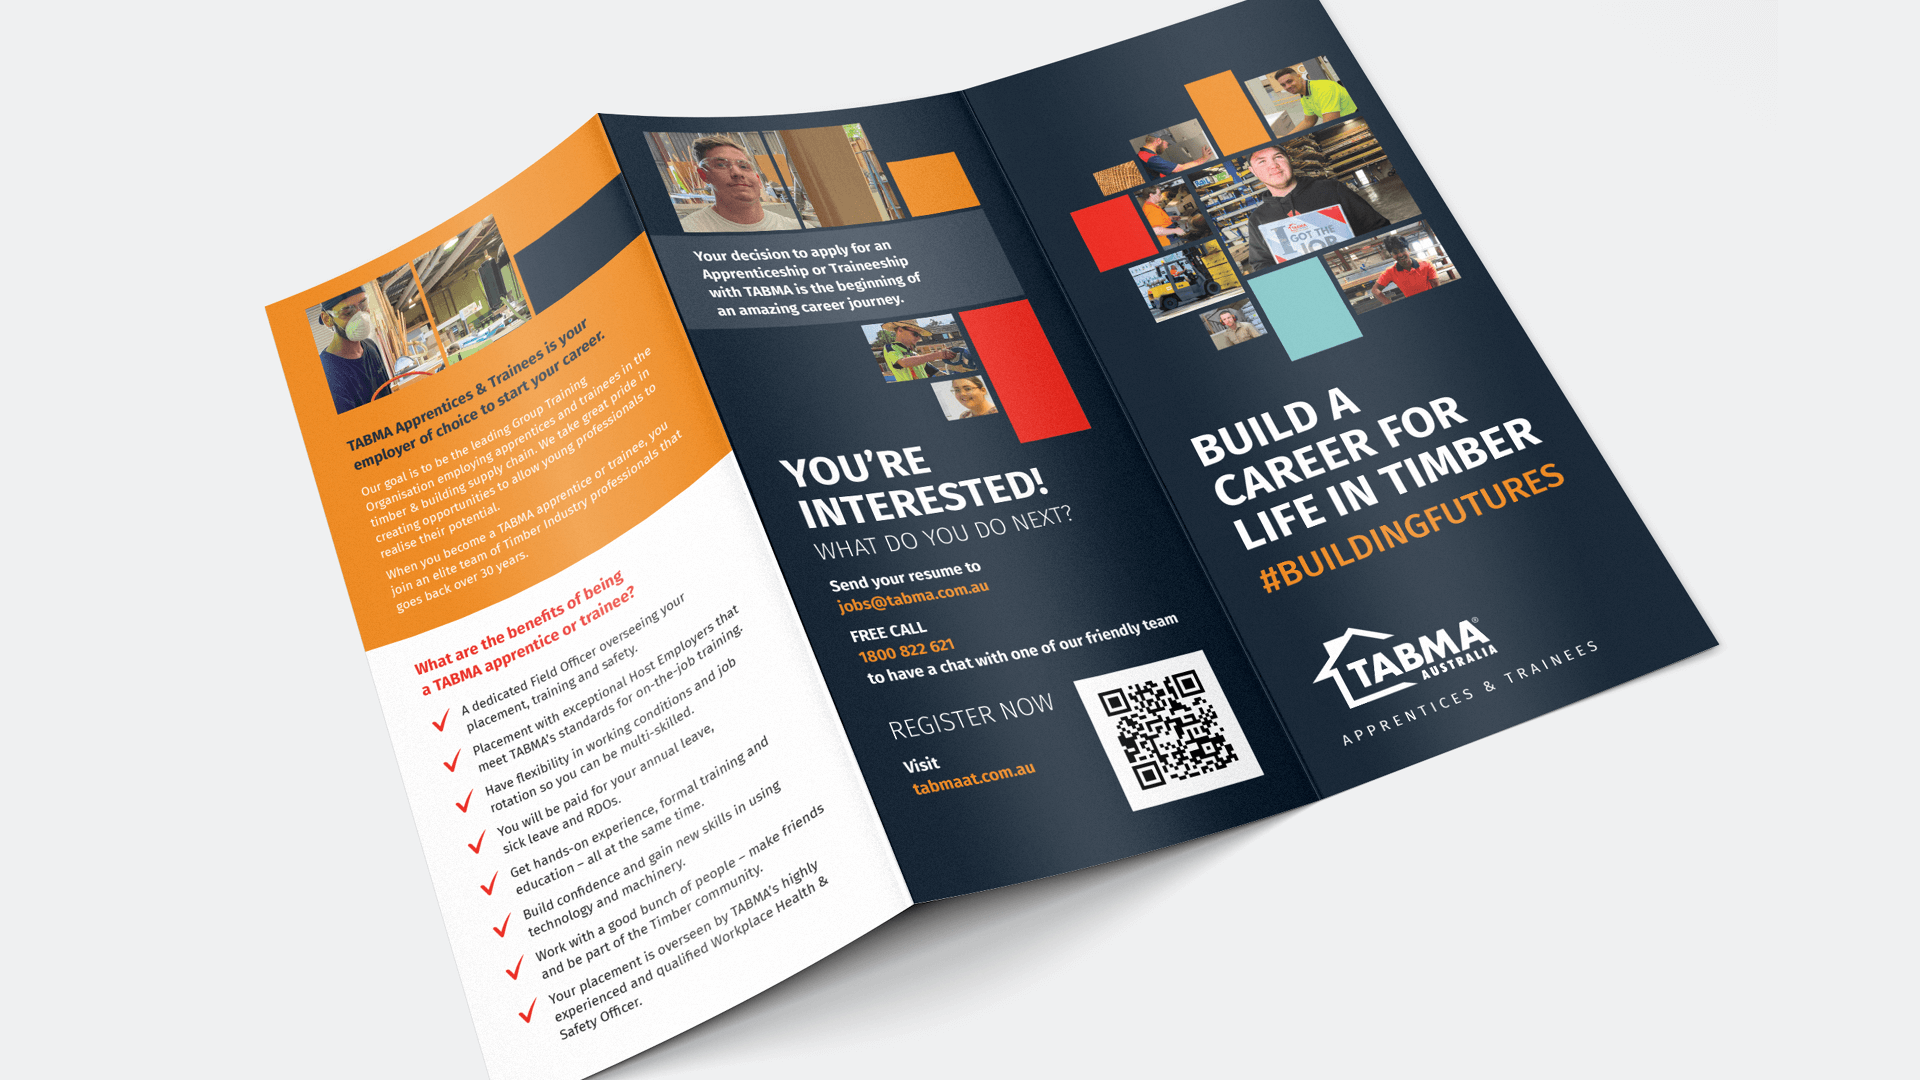 TABMA Apprentices Campaign – Building a Career for Life in Timber - Zadro Agency